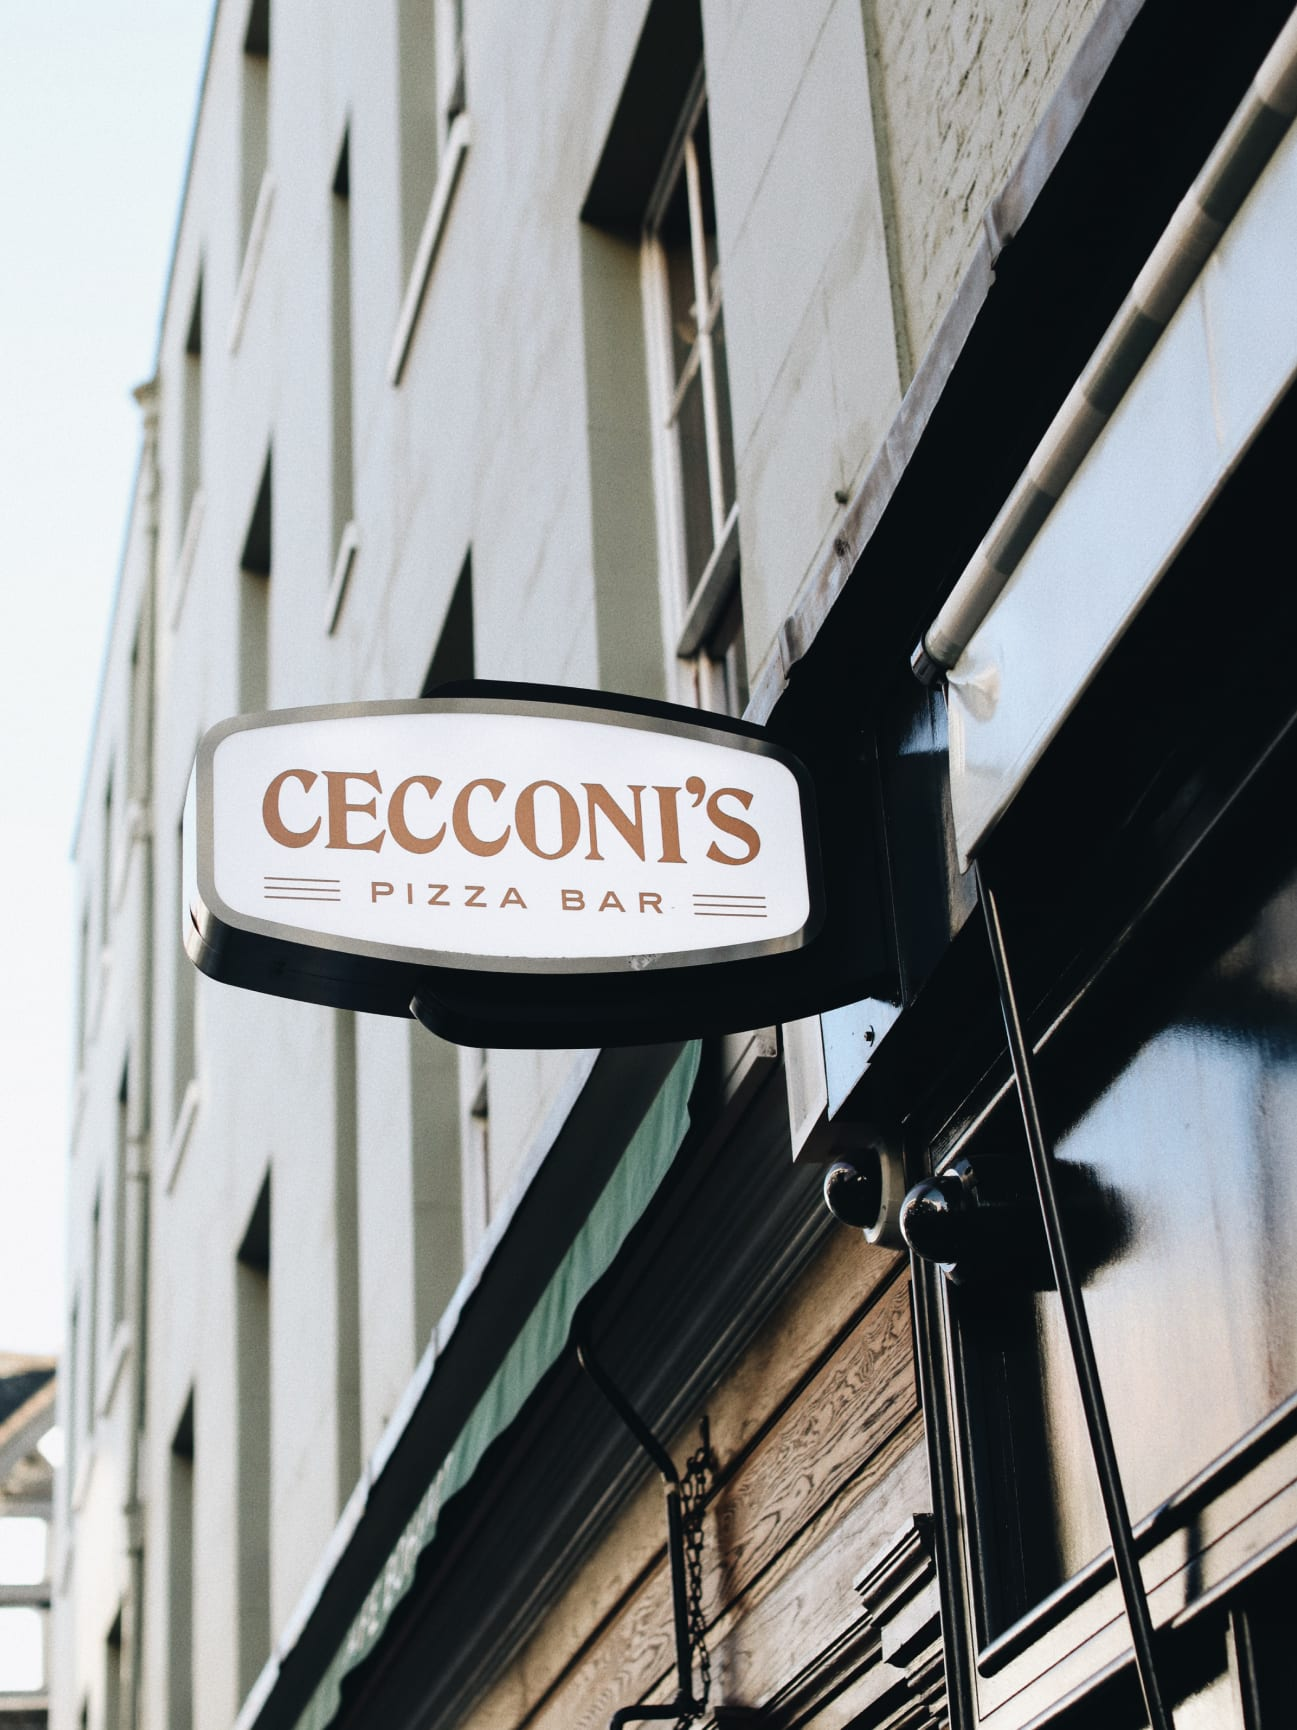 The exterior of a restaurant with a sign saying Cecconis Pizza Bar protruding from its wall.